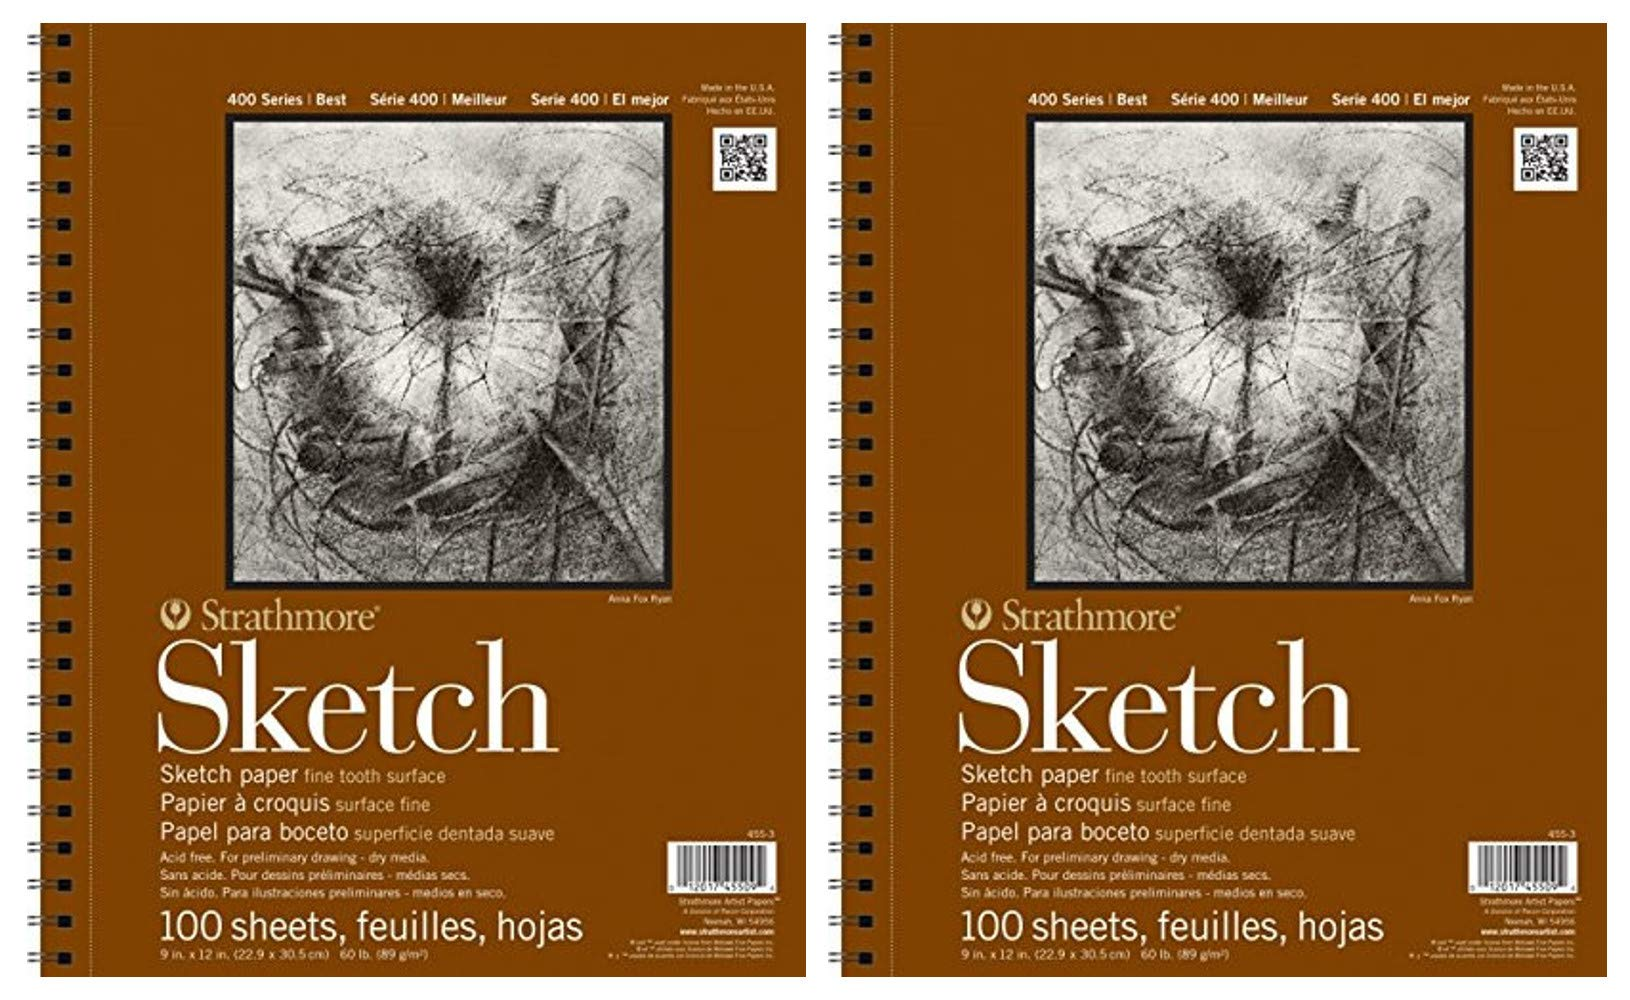 """2-Pack - Strathmore 400 Series Sketch Pad, 11""""x14"""" Wire Bound, 100 Sheets Each"""